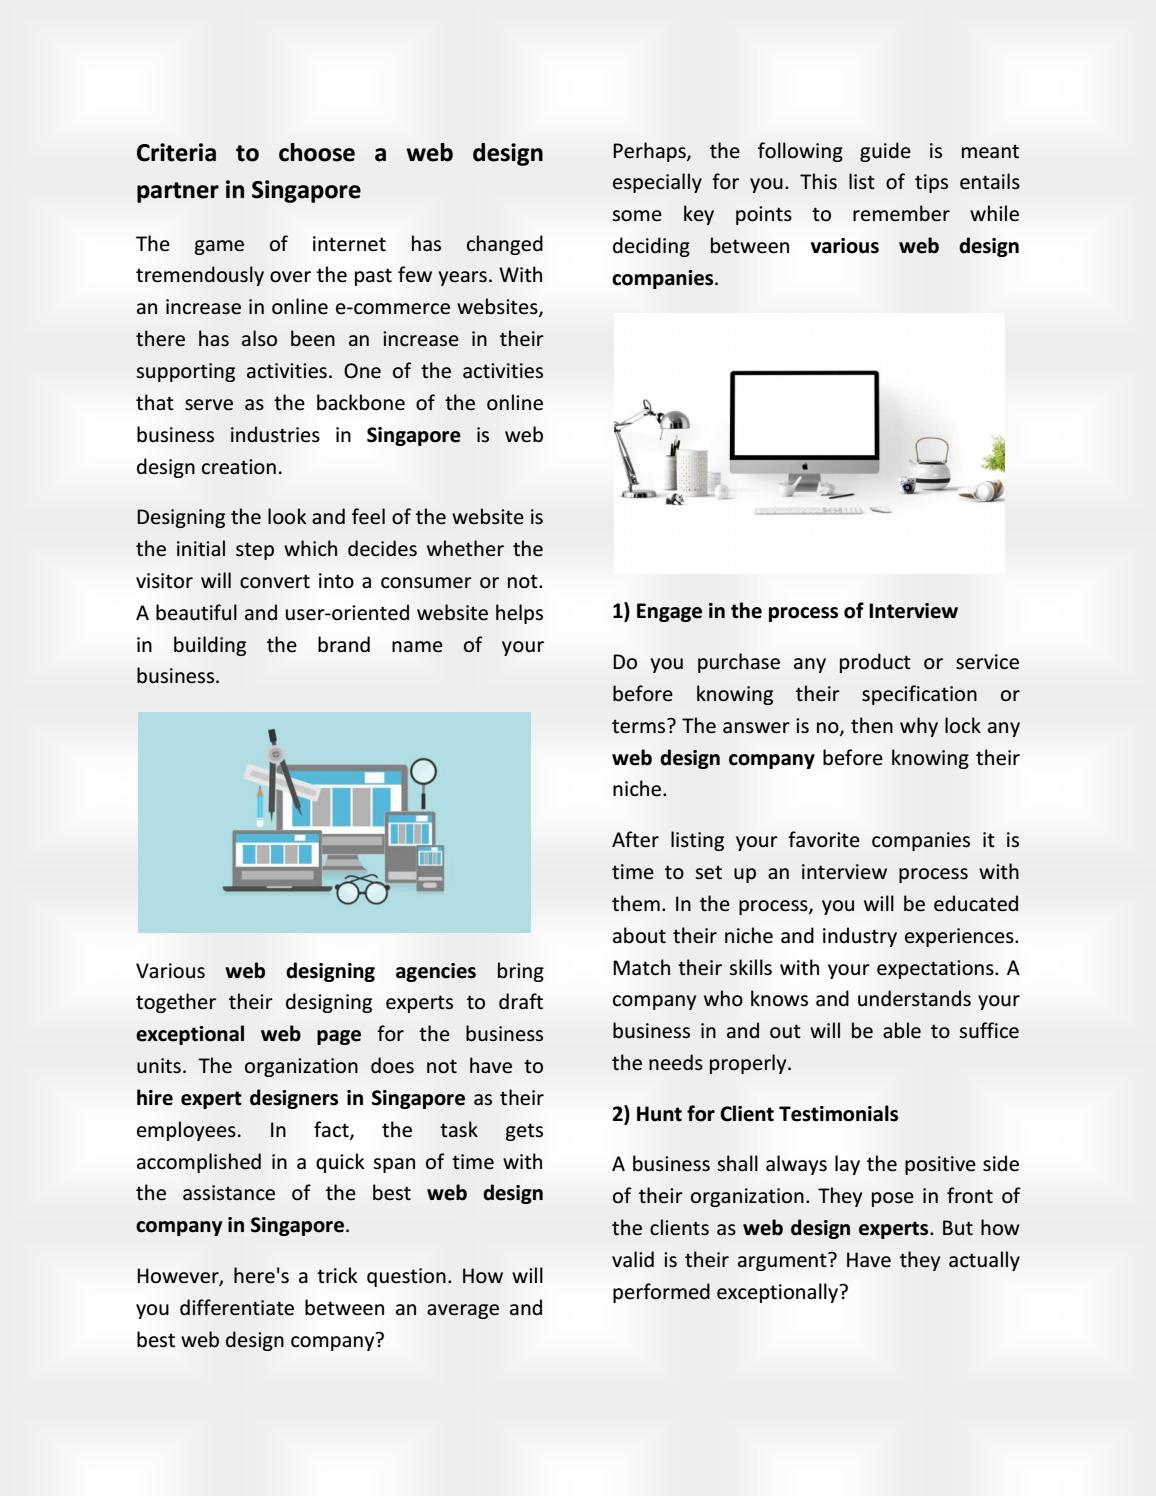 Criteria To Choose A Web Design Partner In Singapore By Rickylegros1 Issuu